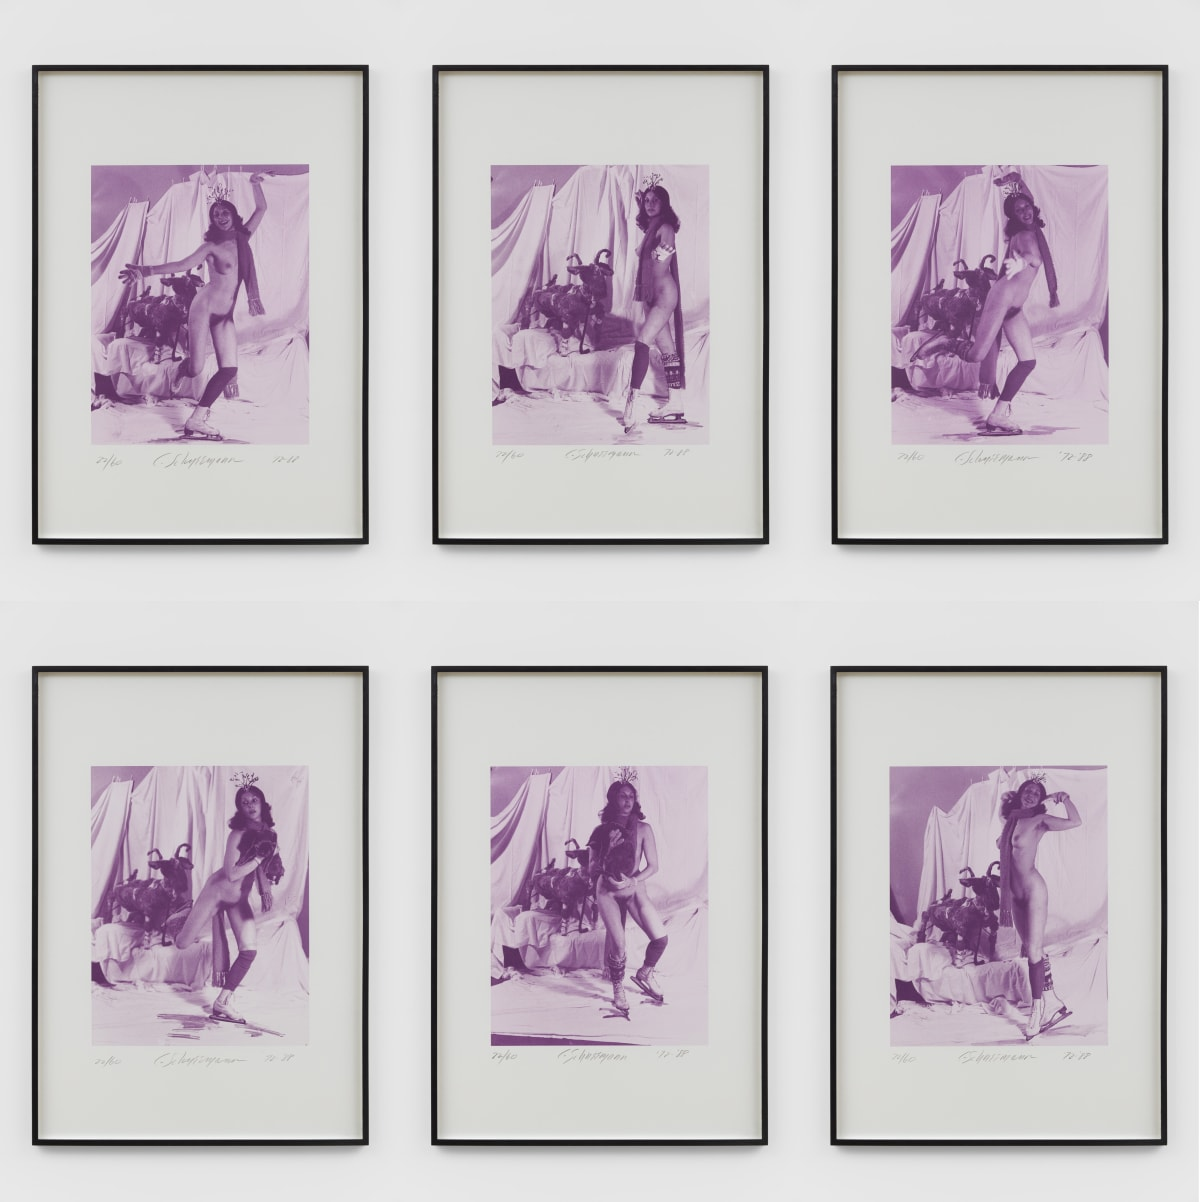 Carolee SCHNEEMANN Ice Naked Skating, 1972/1988 Set of 6 photo-lithographs 100 x 70 cm Edition 22 of 60 + 4 AP